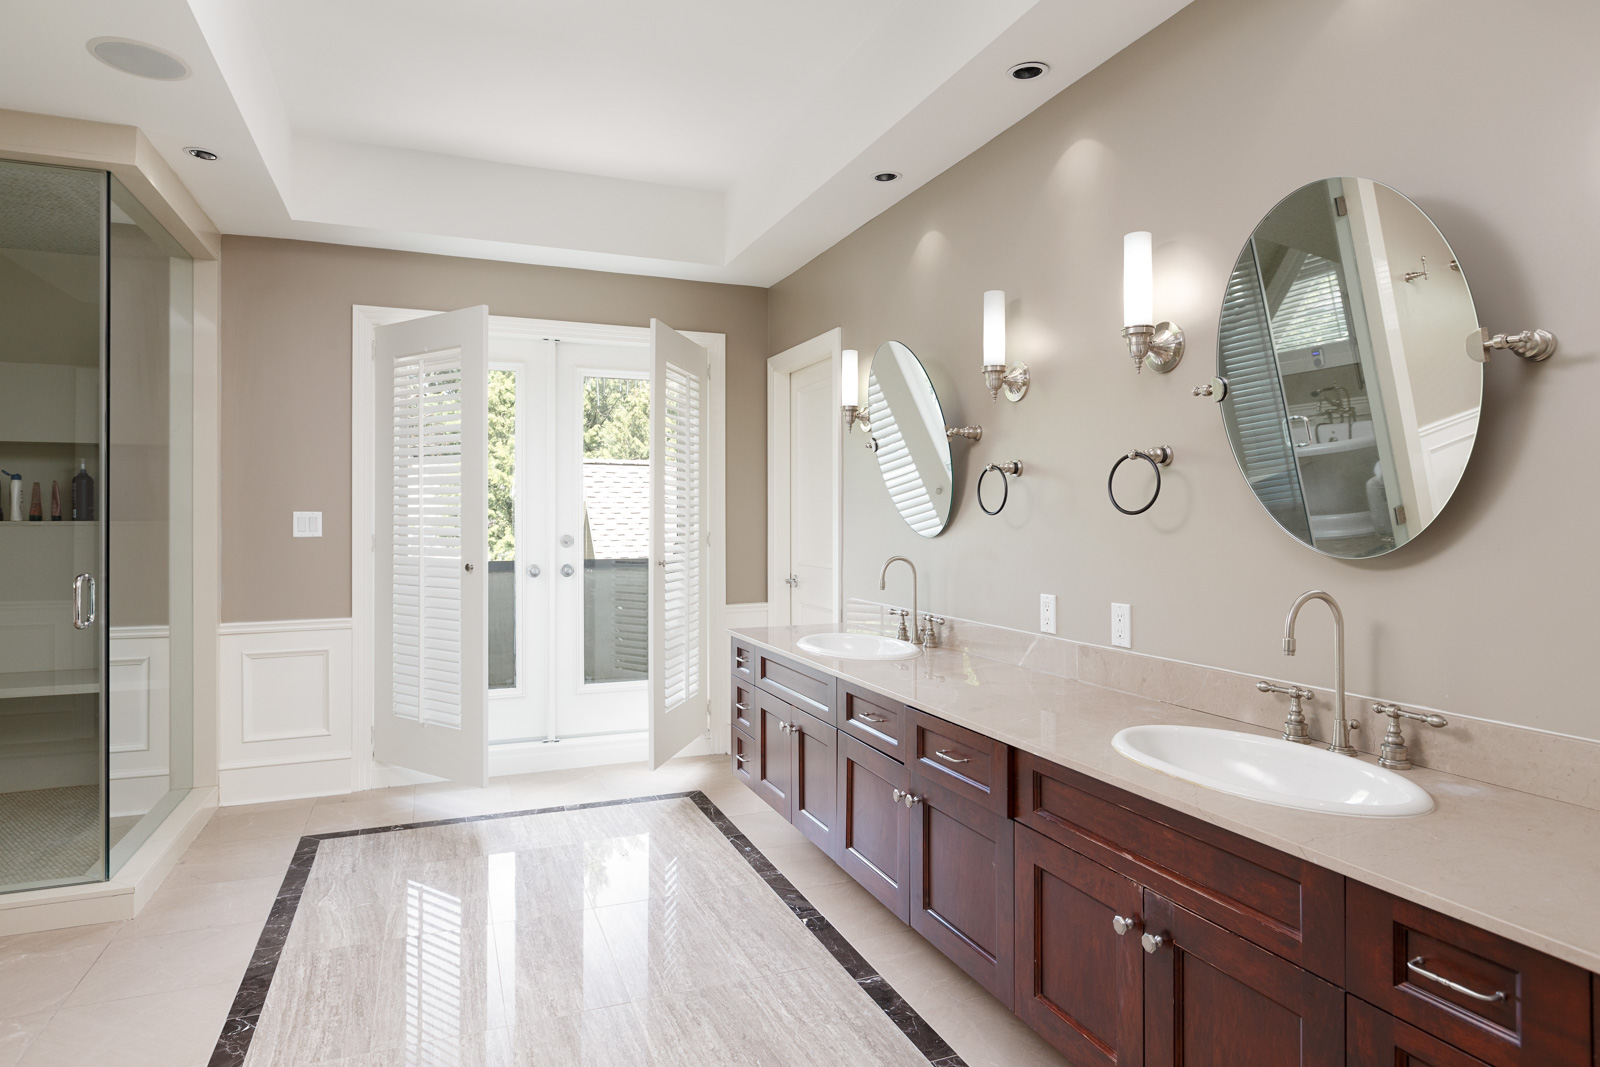 Bathroom with two sinks and French doors inside Vancouver luxury rental home.